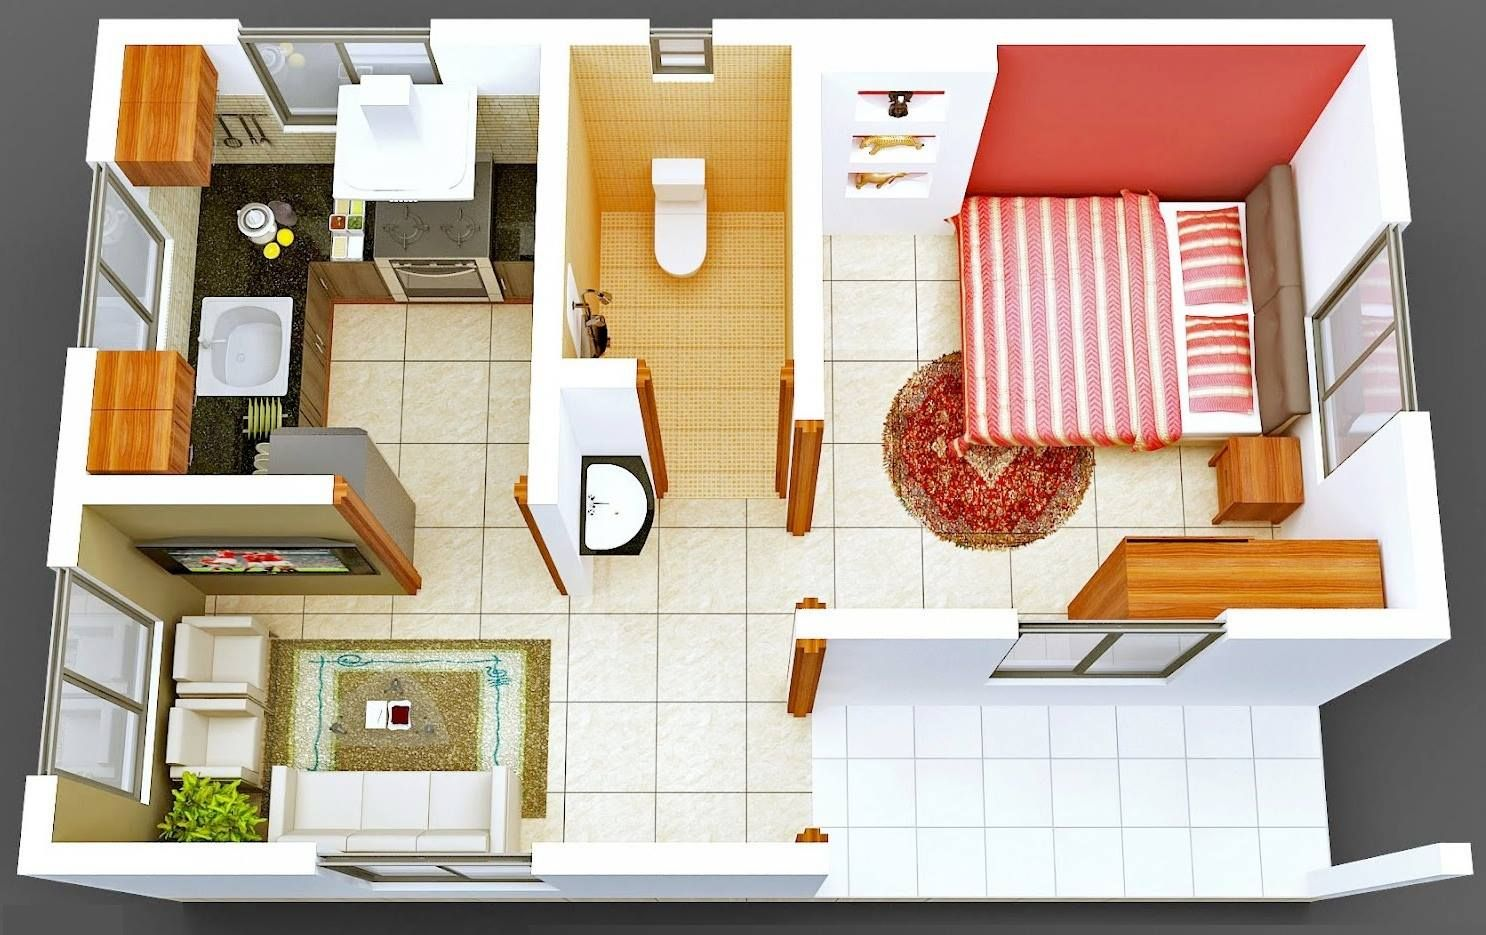 How To Efficiently Arrange Furniture In A Studio Apartment Apartment Furniture Layout One Room Apartment Studio Apartment Layout